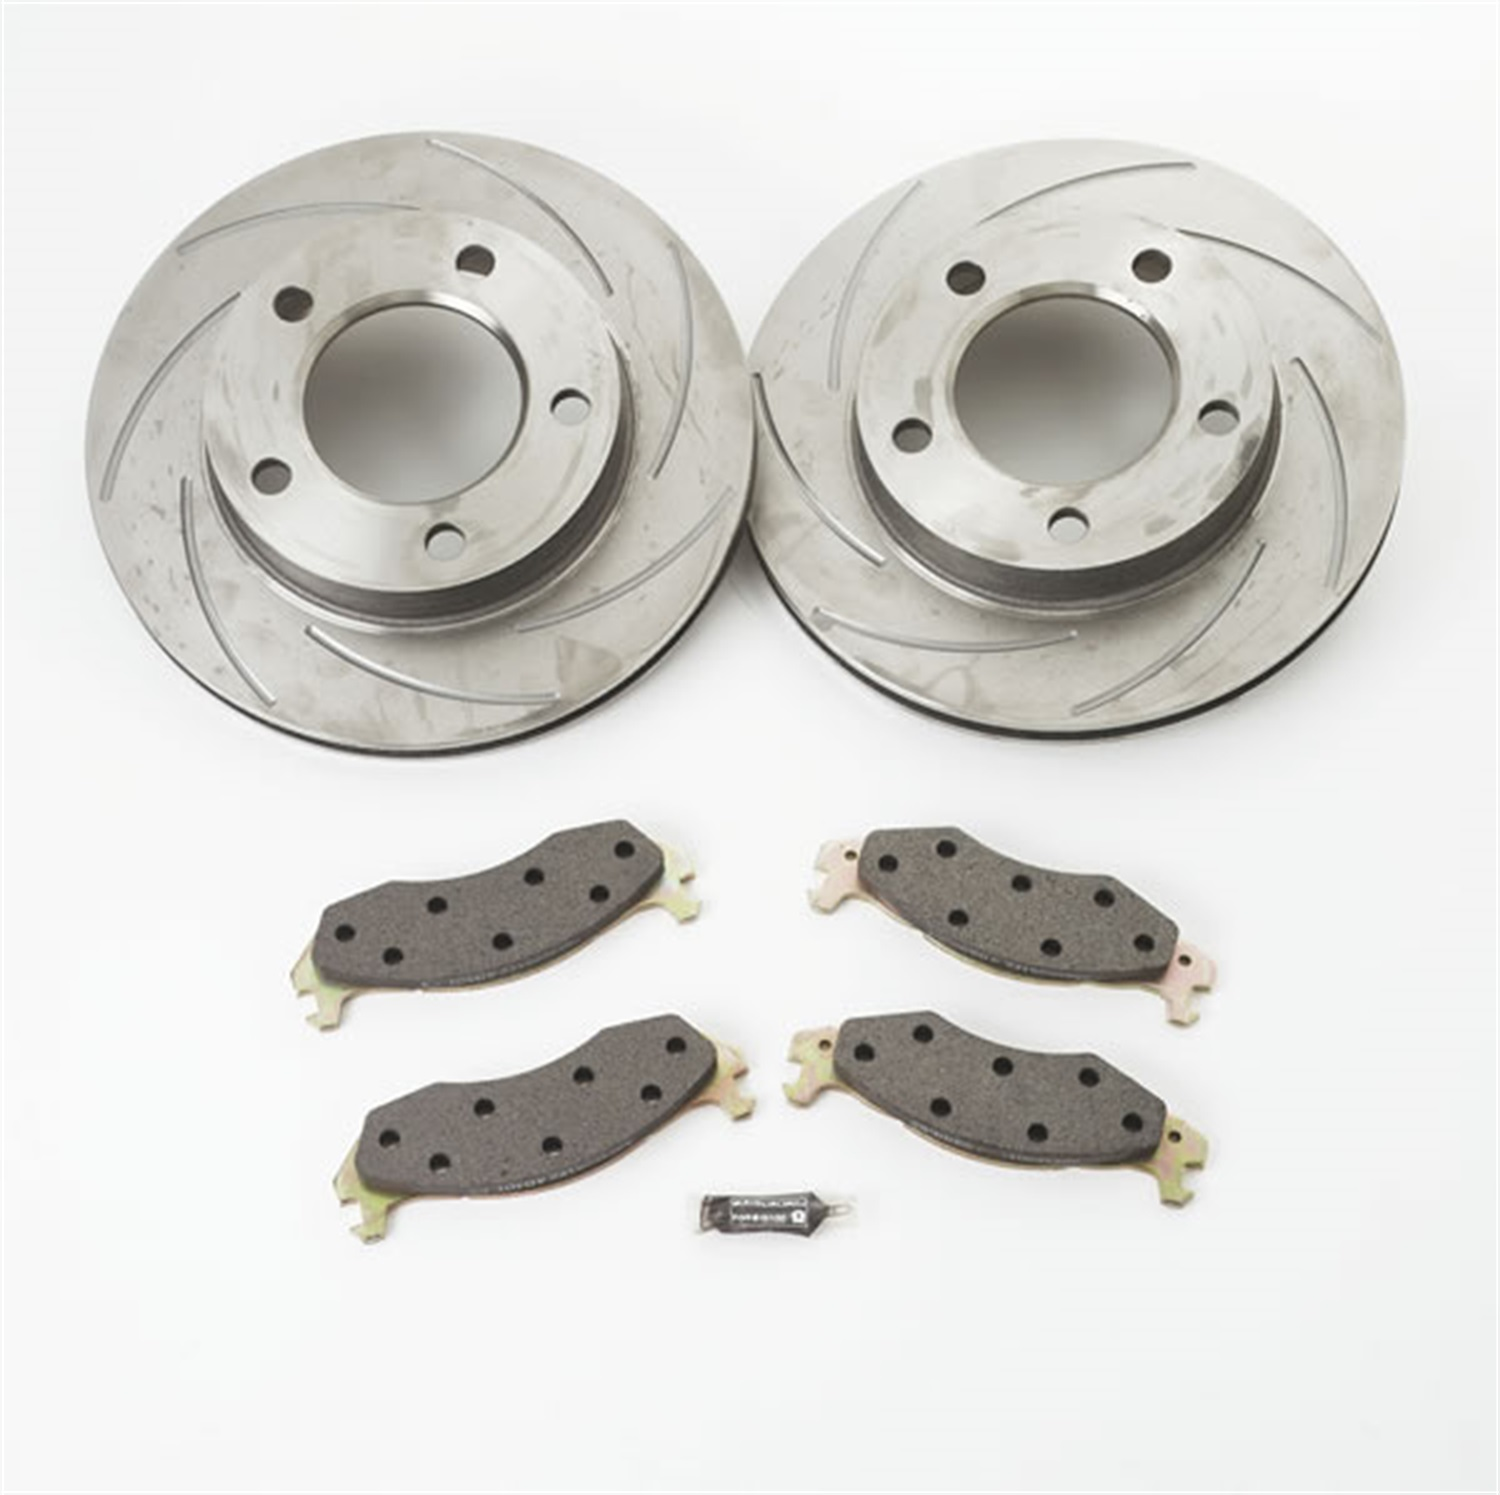 SSBC Performance Brakes A2351009 Turbo Slotted Rotors Fits 88-92 K1500 Pickup